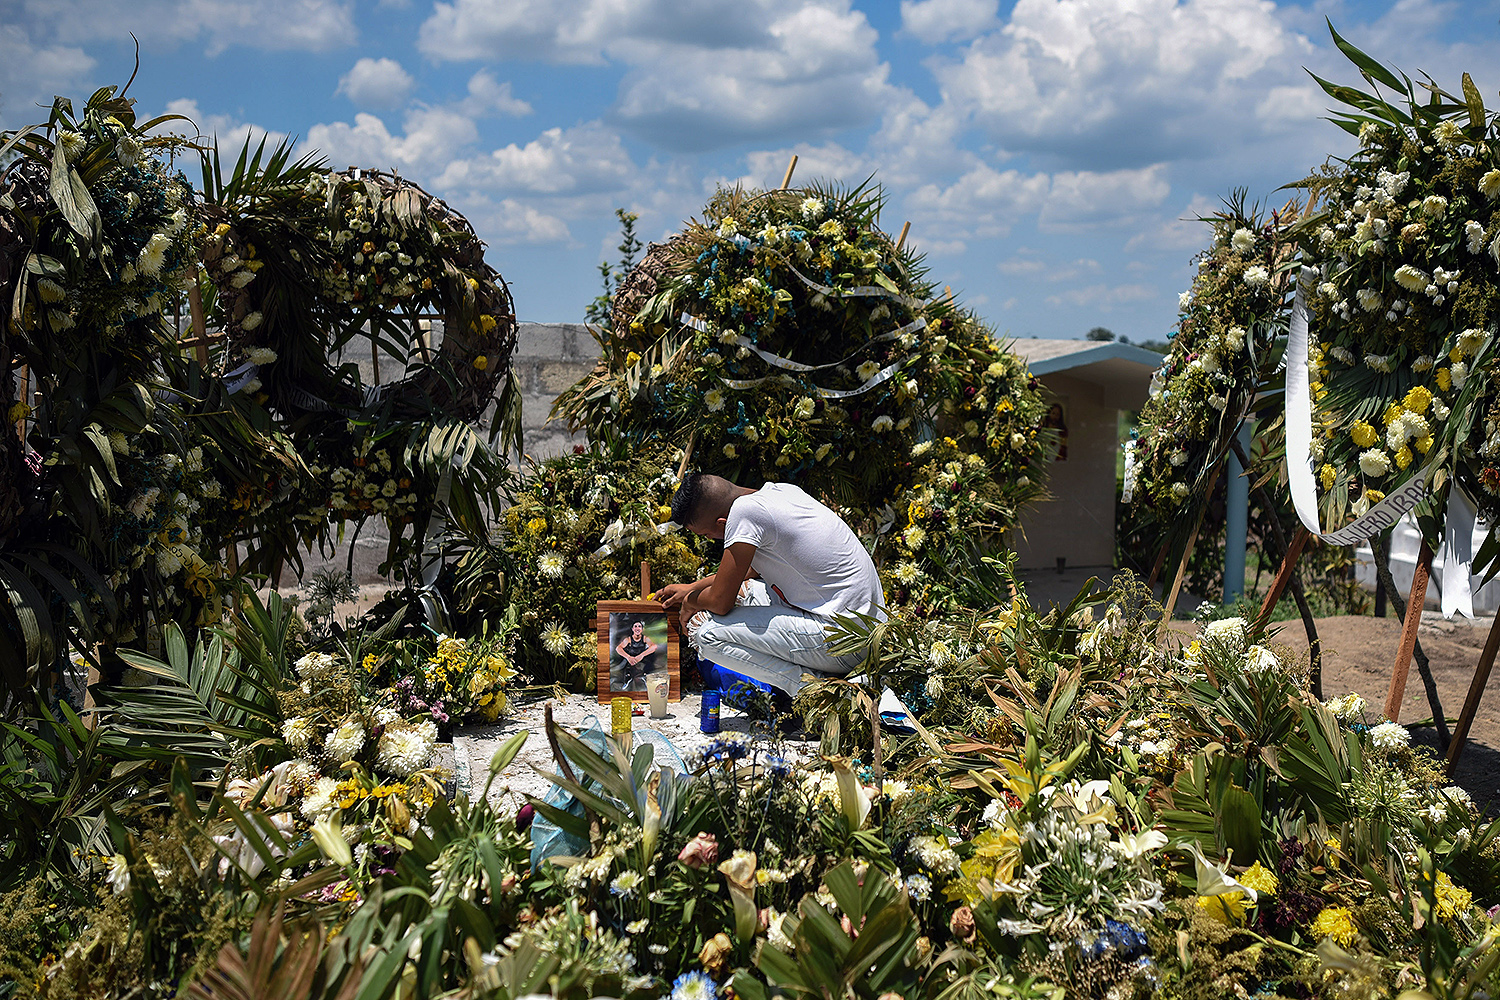 Relatives of 16-year-old Alexander Martinez, a Mexican American killed by police, visit a memorial in the town of Acatlán de Pérez Figueroa in Oaxaca, Mexico, on June 15. The police shooting is under investigation. VICTORIA RAZO/AFP via Getty Images